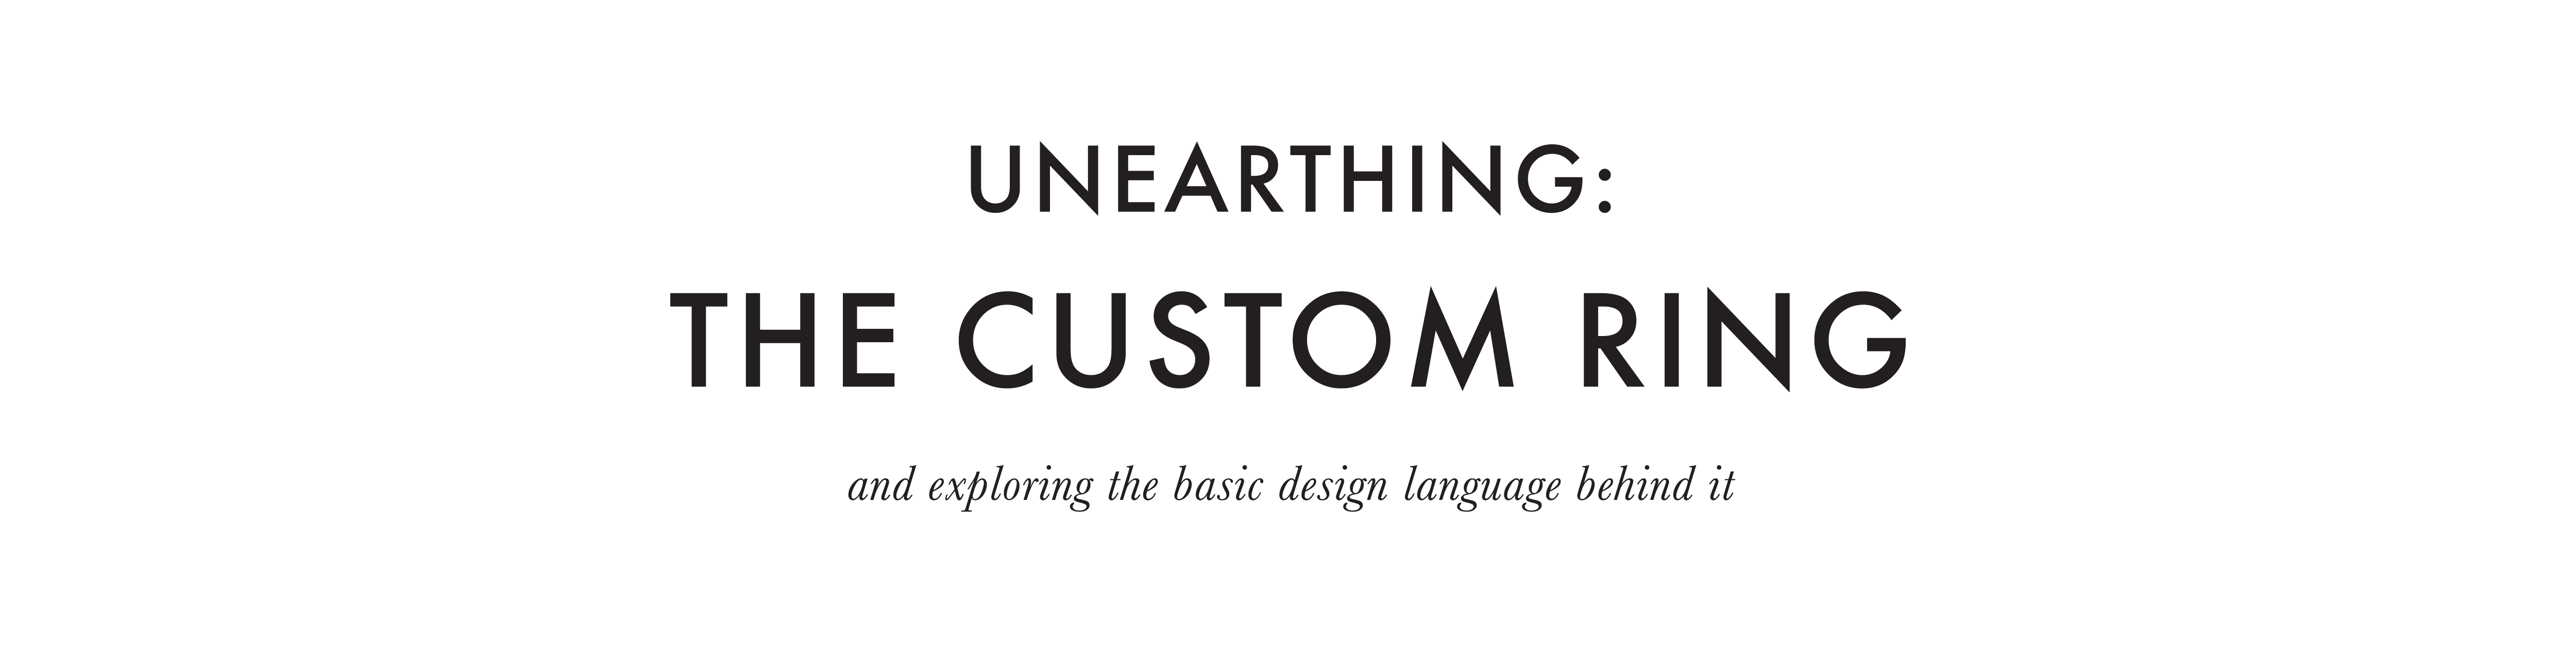 M. Hisae Design Guide Unearthing: The Custom Ring